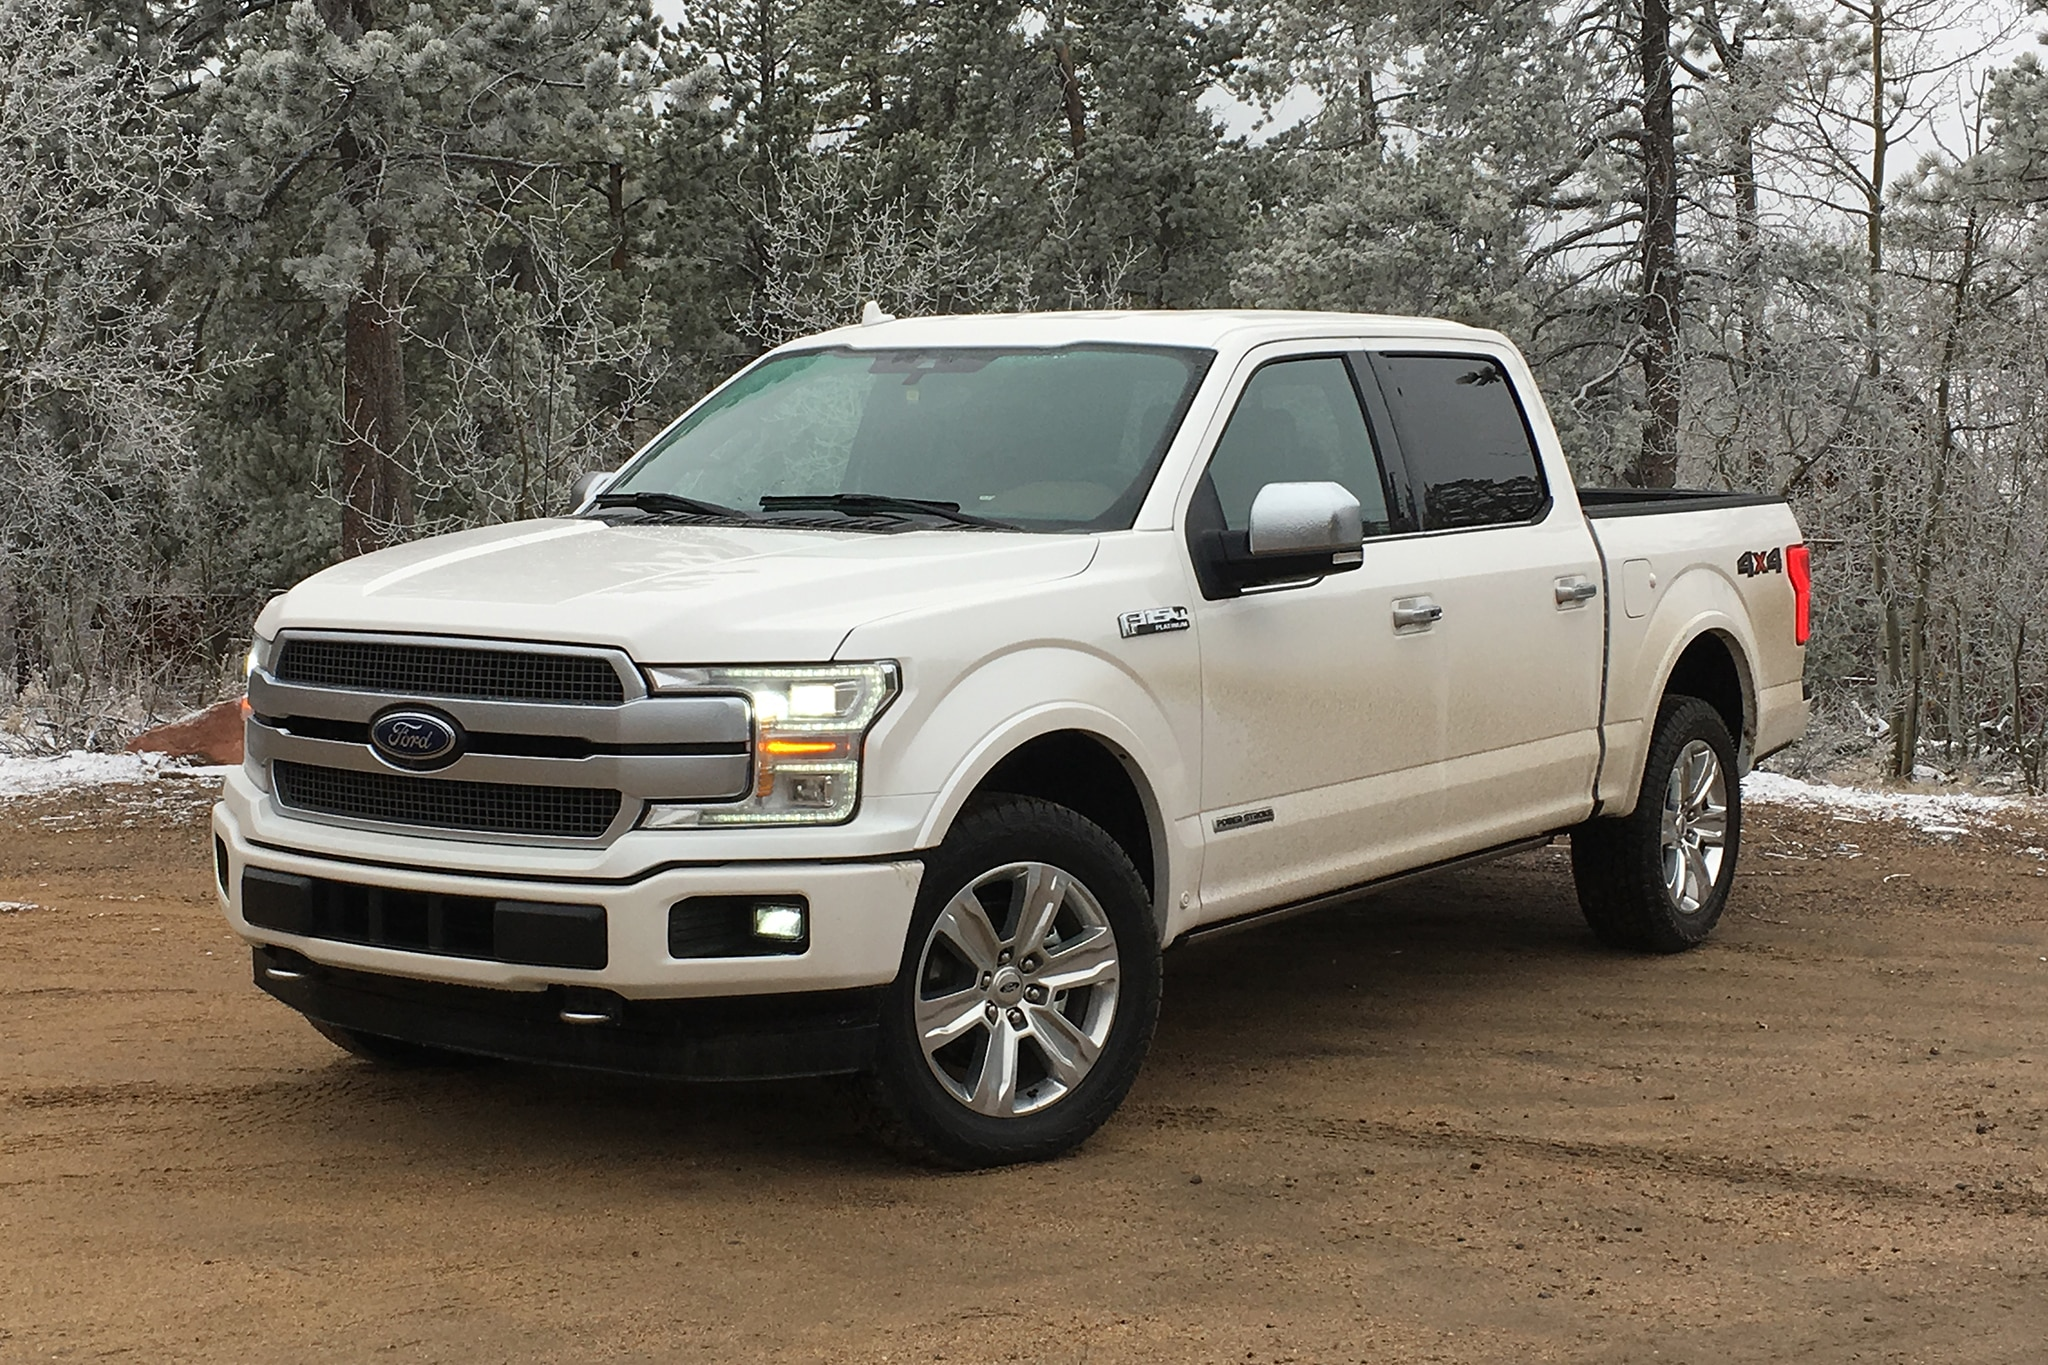 2018 ford f 150 3/4 ton